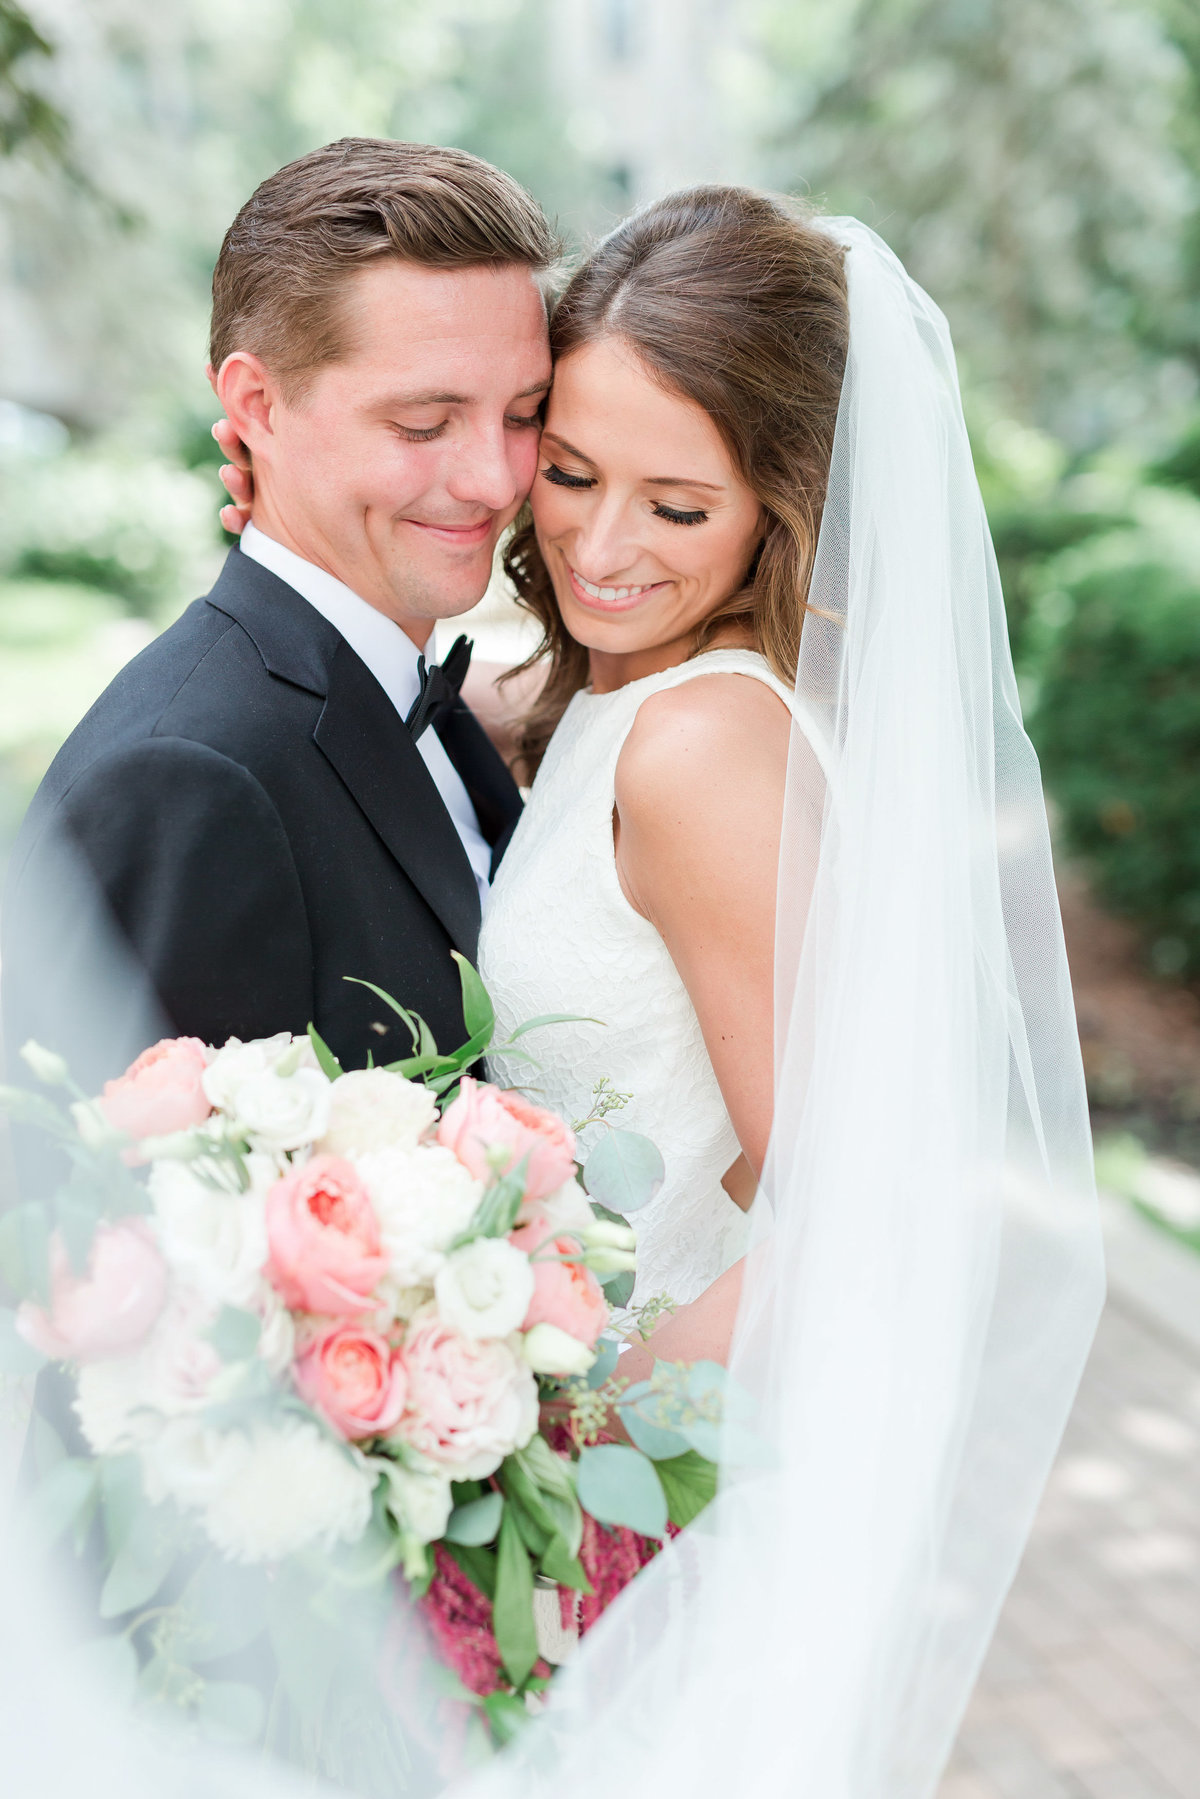 Maison Meredith Photography Wisconsin Wedding Photographer Real Wedding Four 047